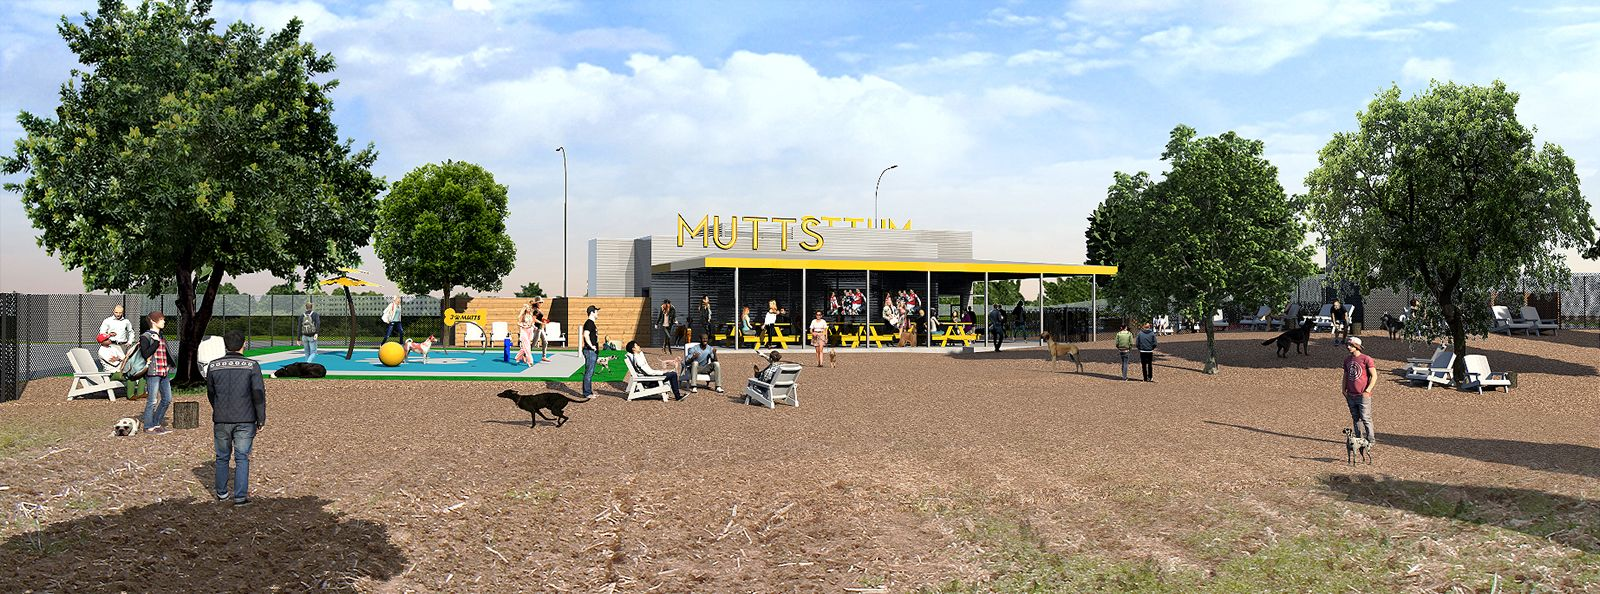 """MUTTS Canine Cantina Shows That """"Opportunity is Barking"""" with #BringAMUTTSHere Campaign"""